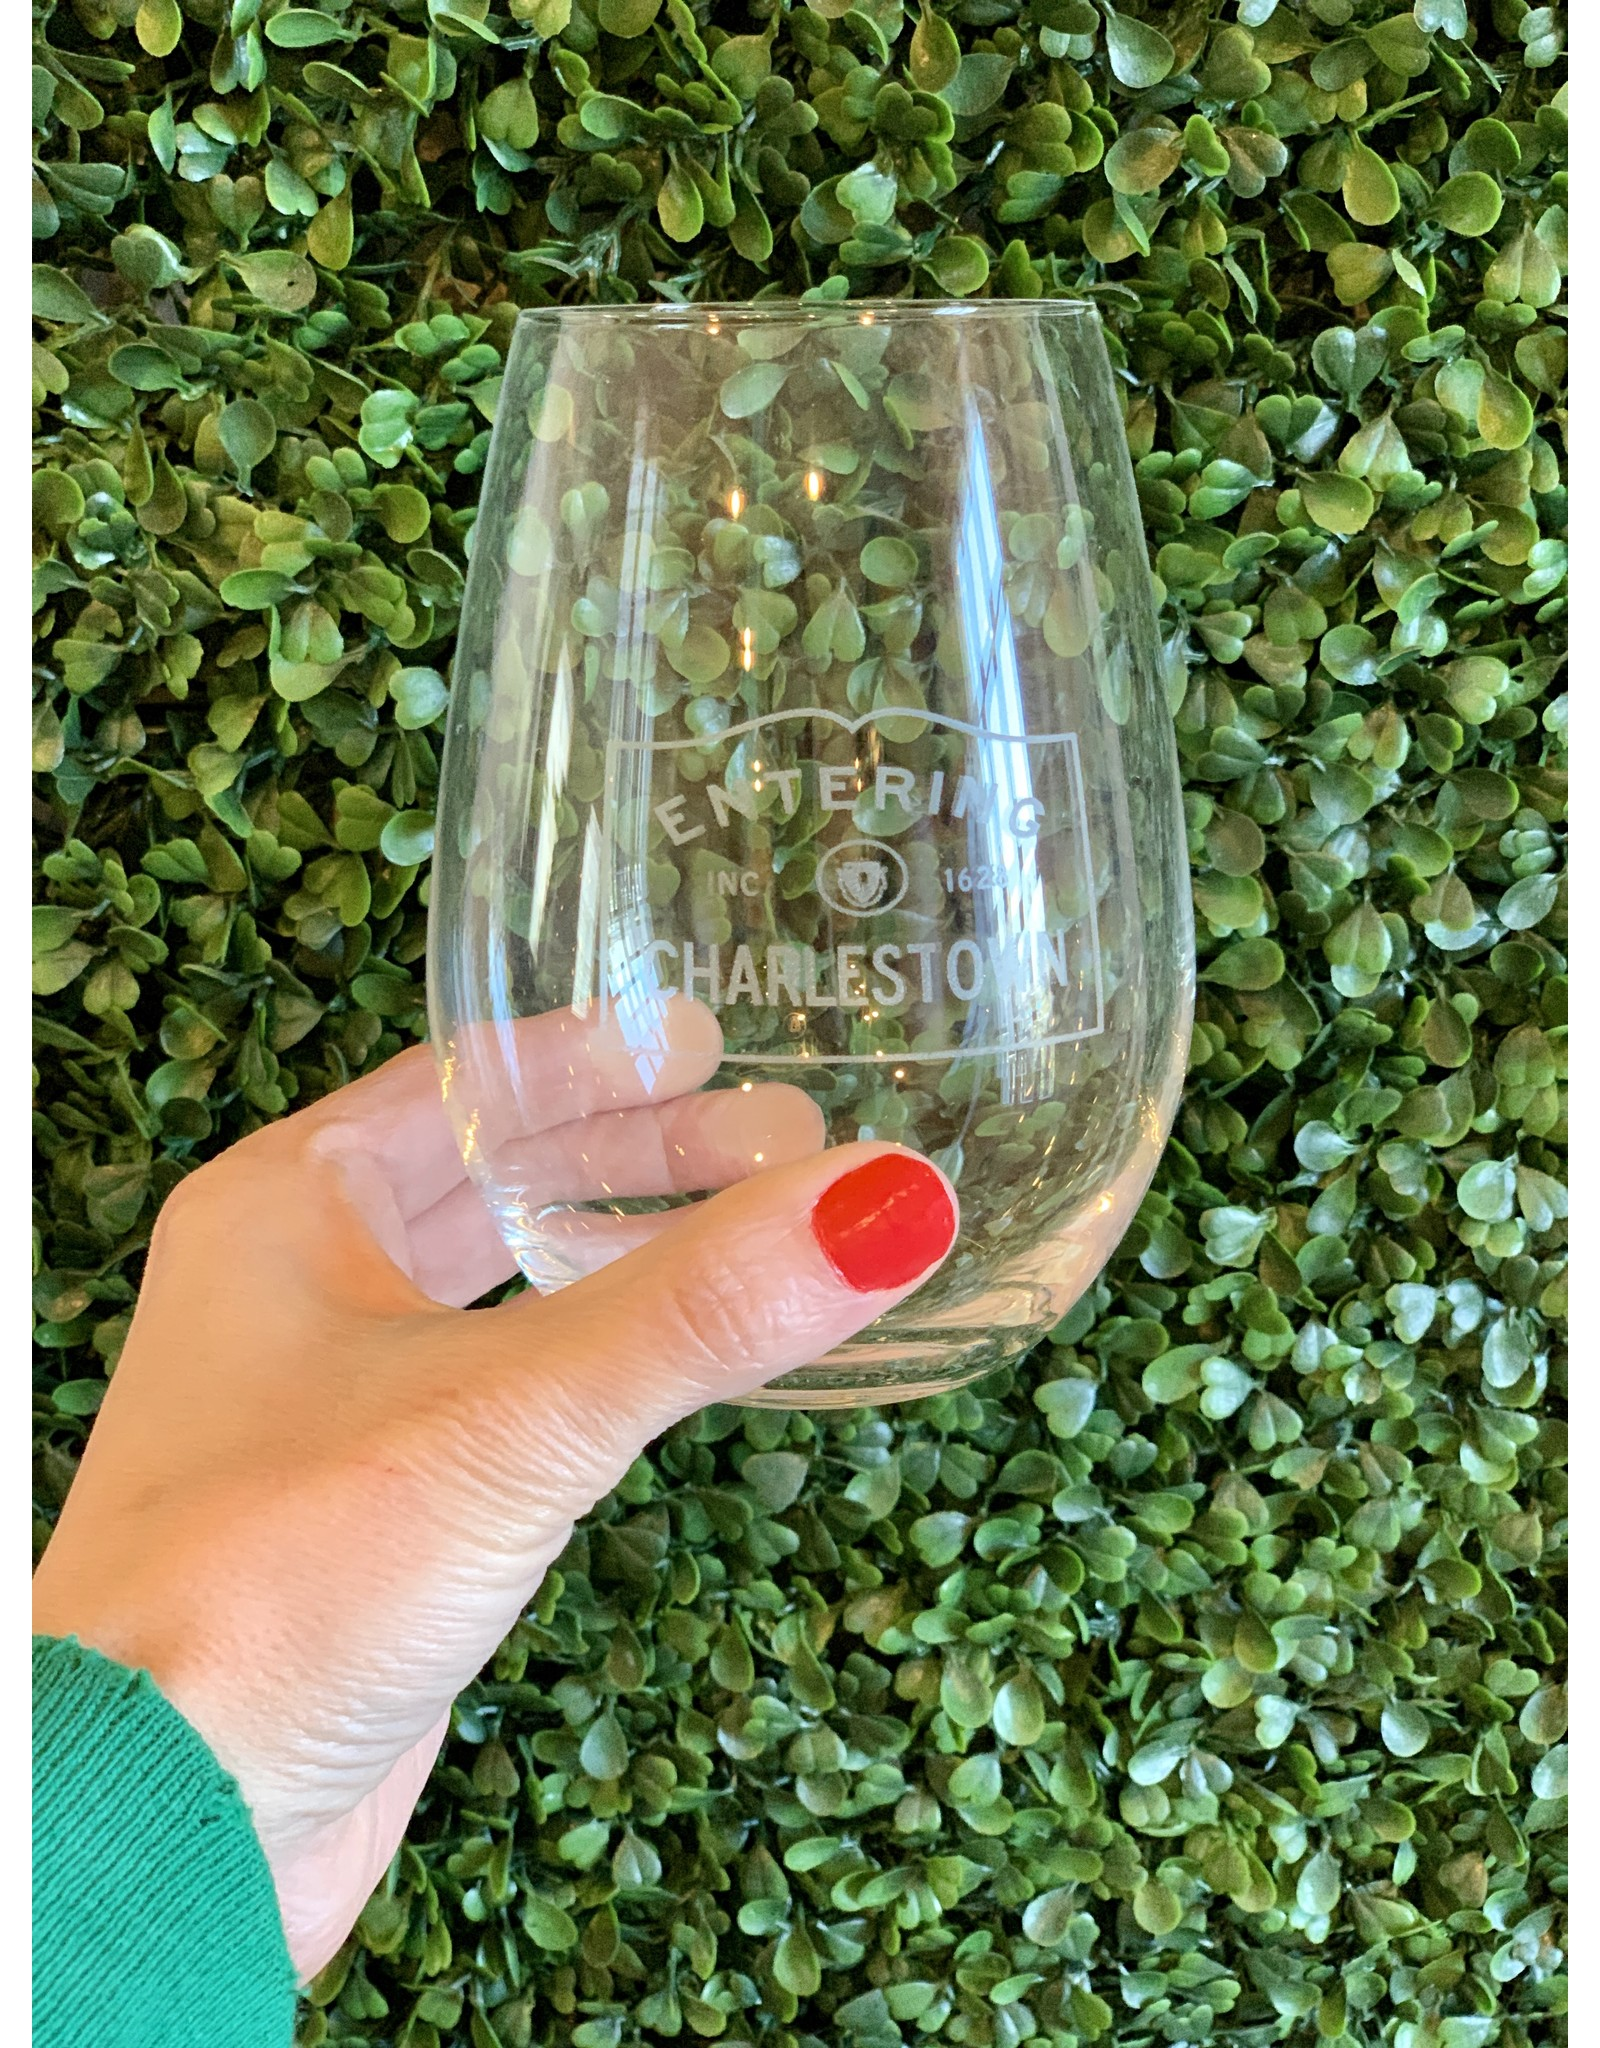 Maple Leaf at Home Entering Charlestown Wine Glass